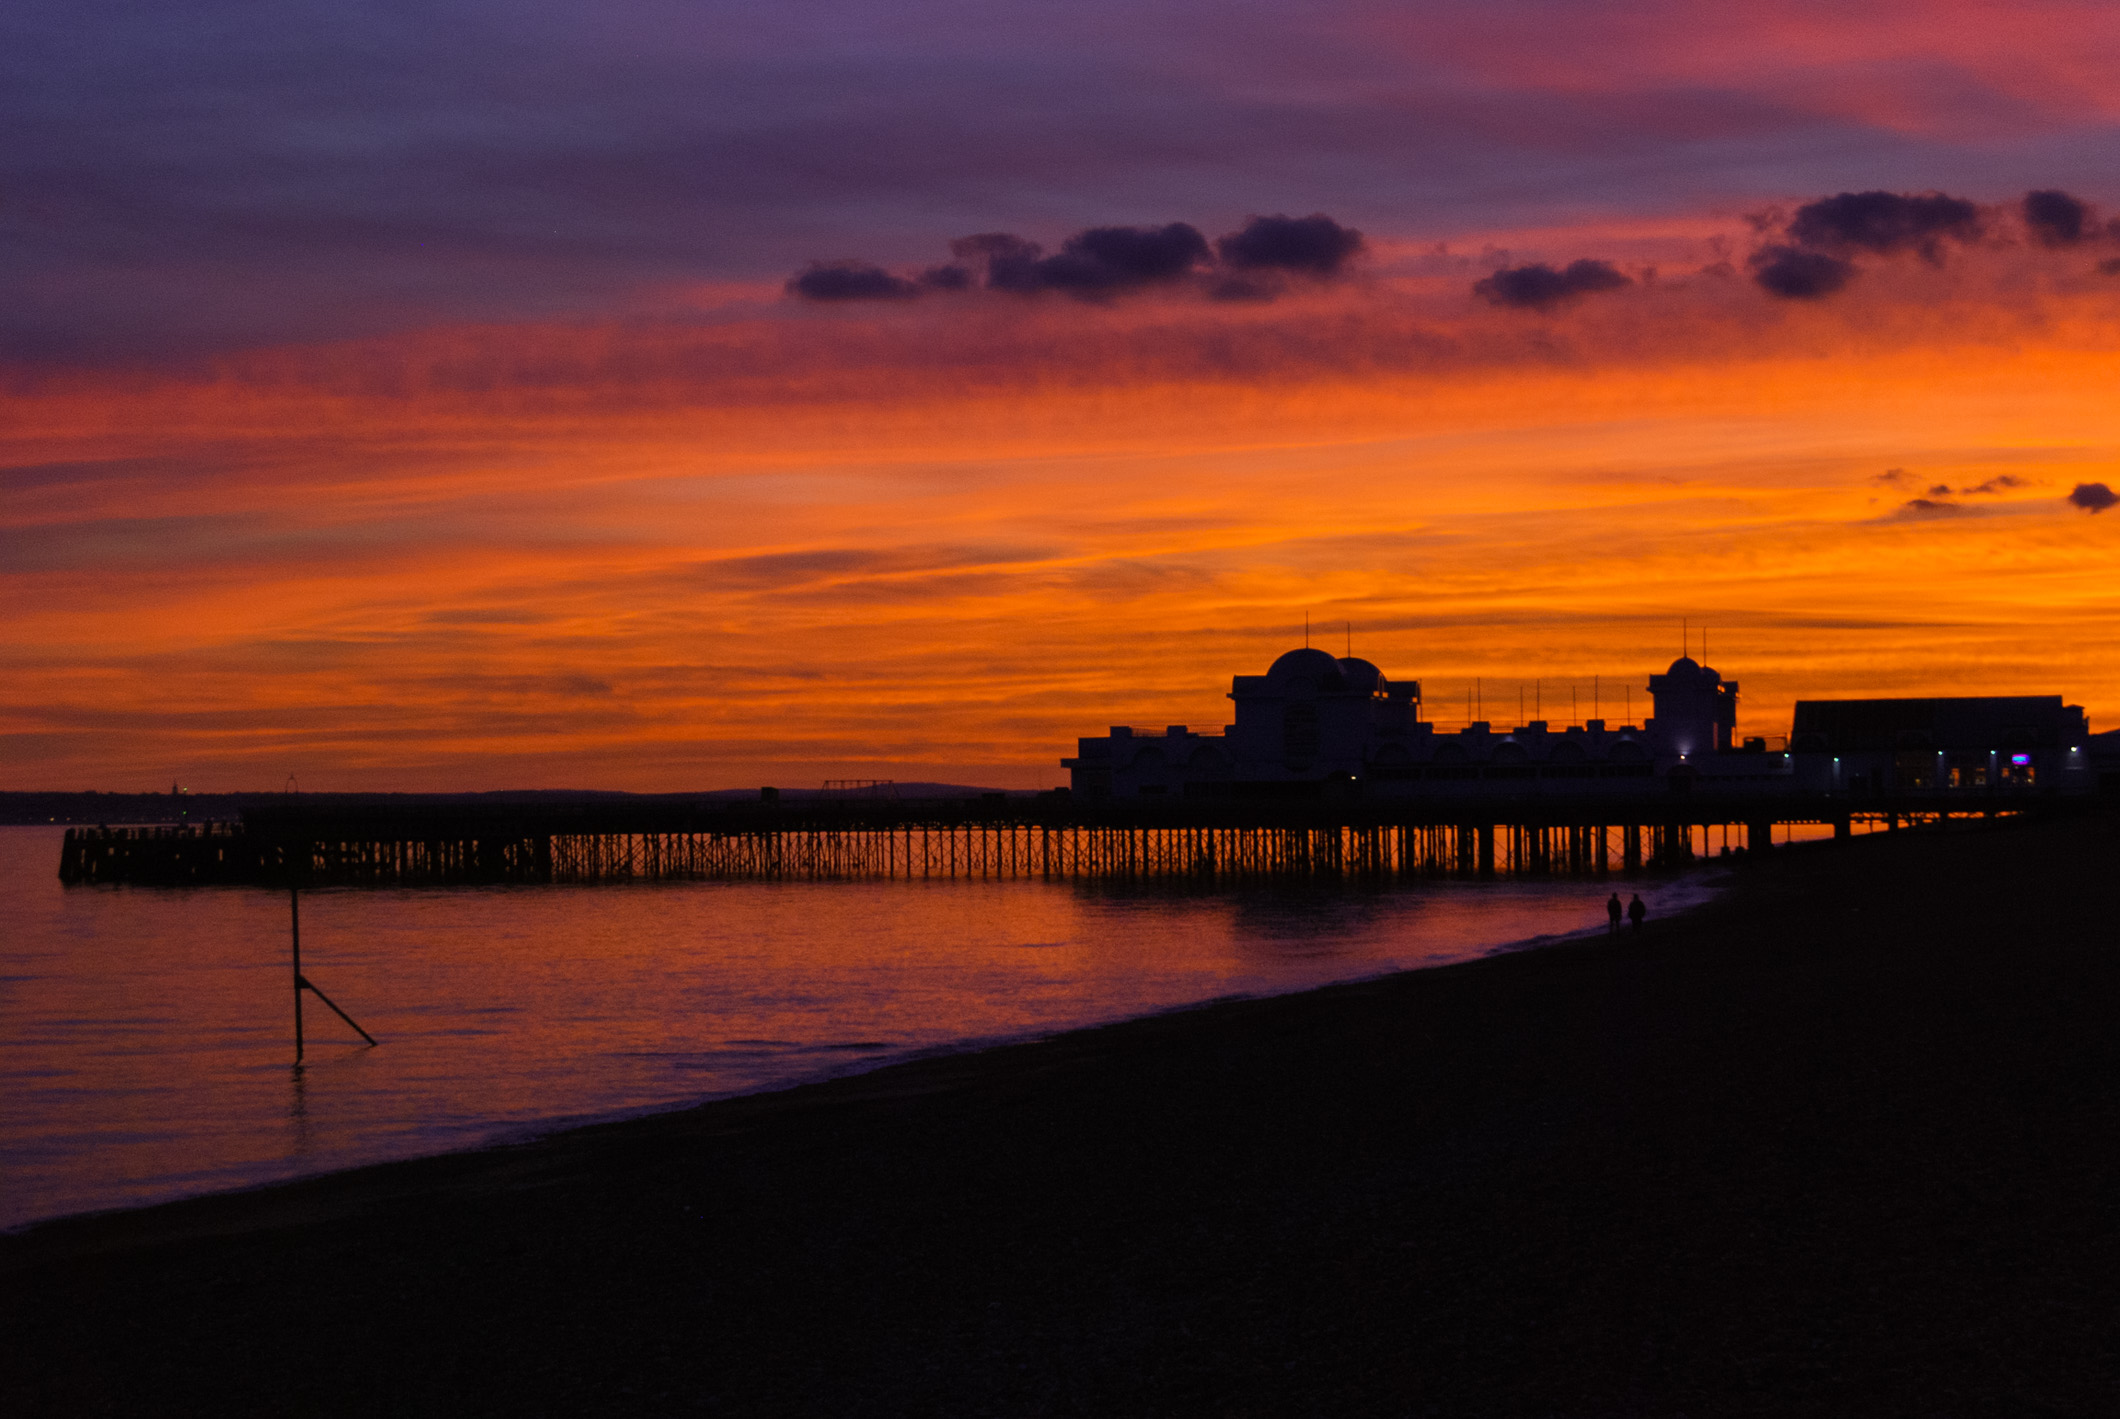 Color photograph of the sunset at South Parade Pier, Southsea, Portsmouth. England, Taken October 18 2017